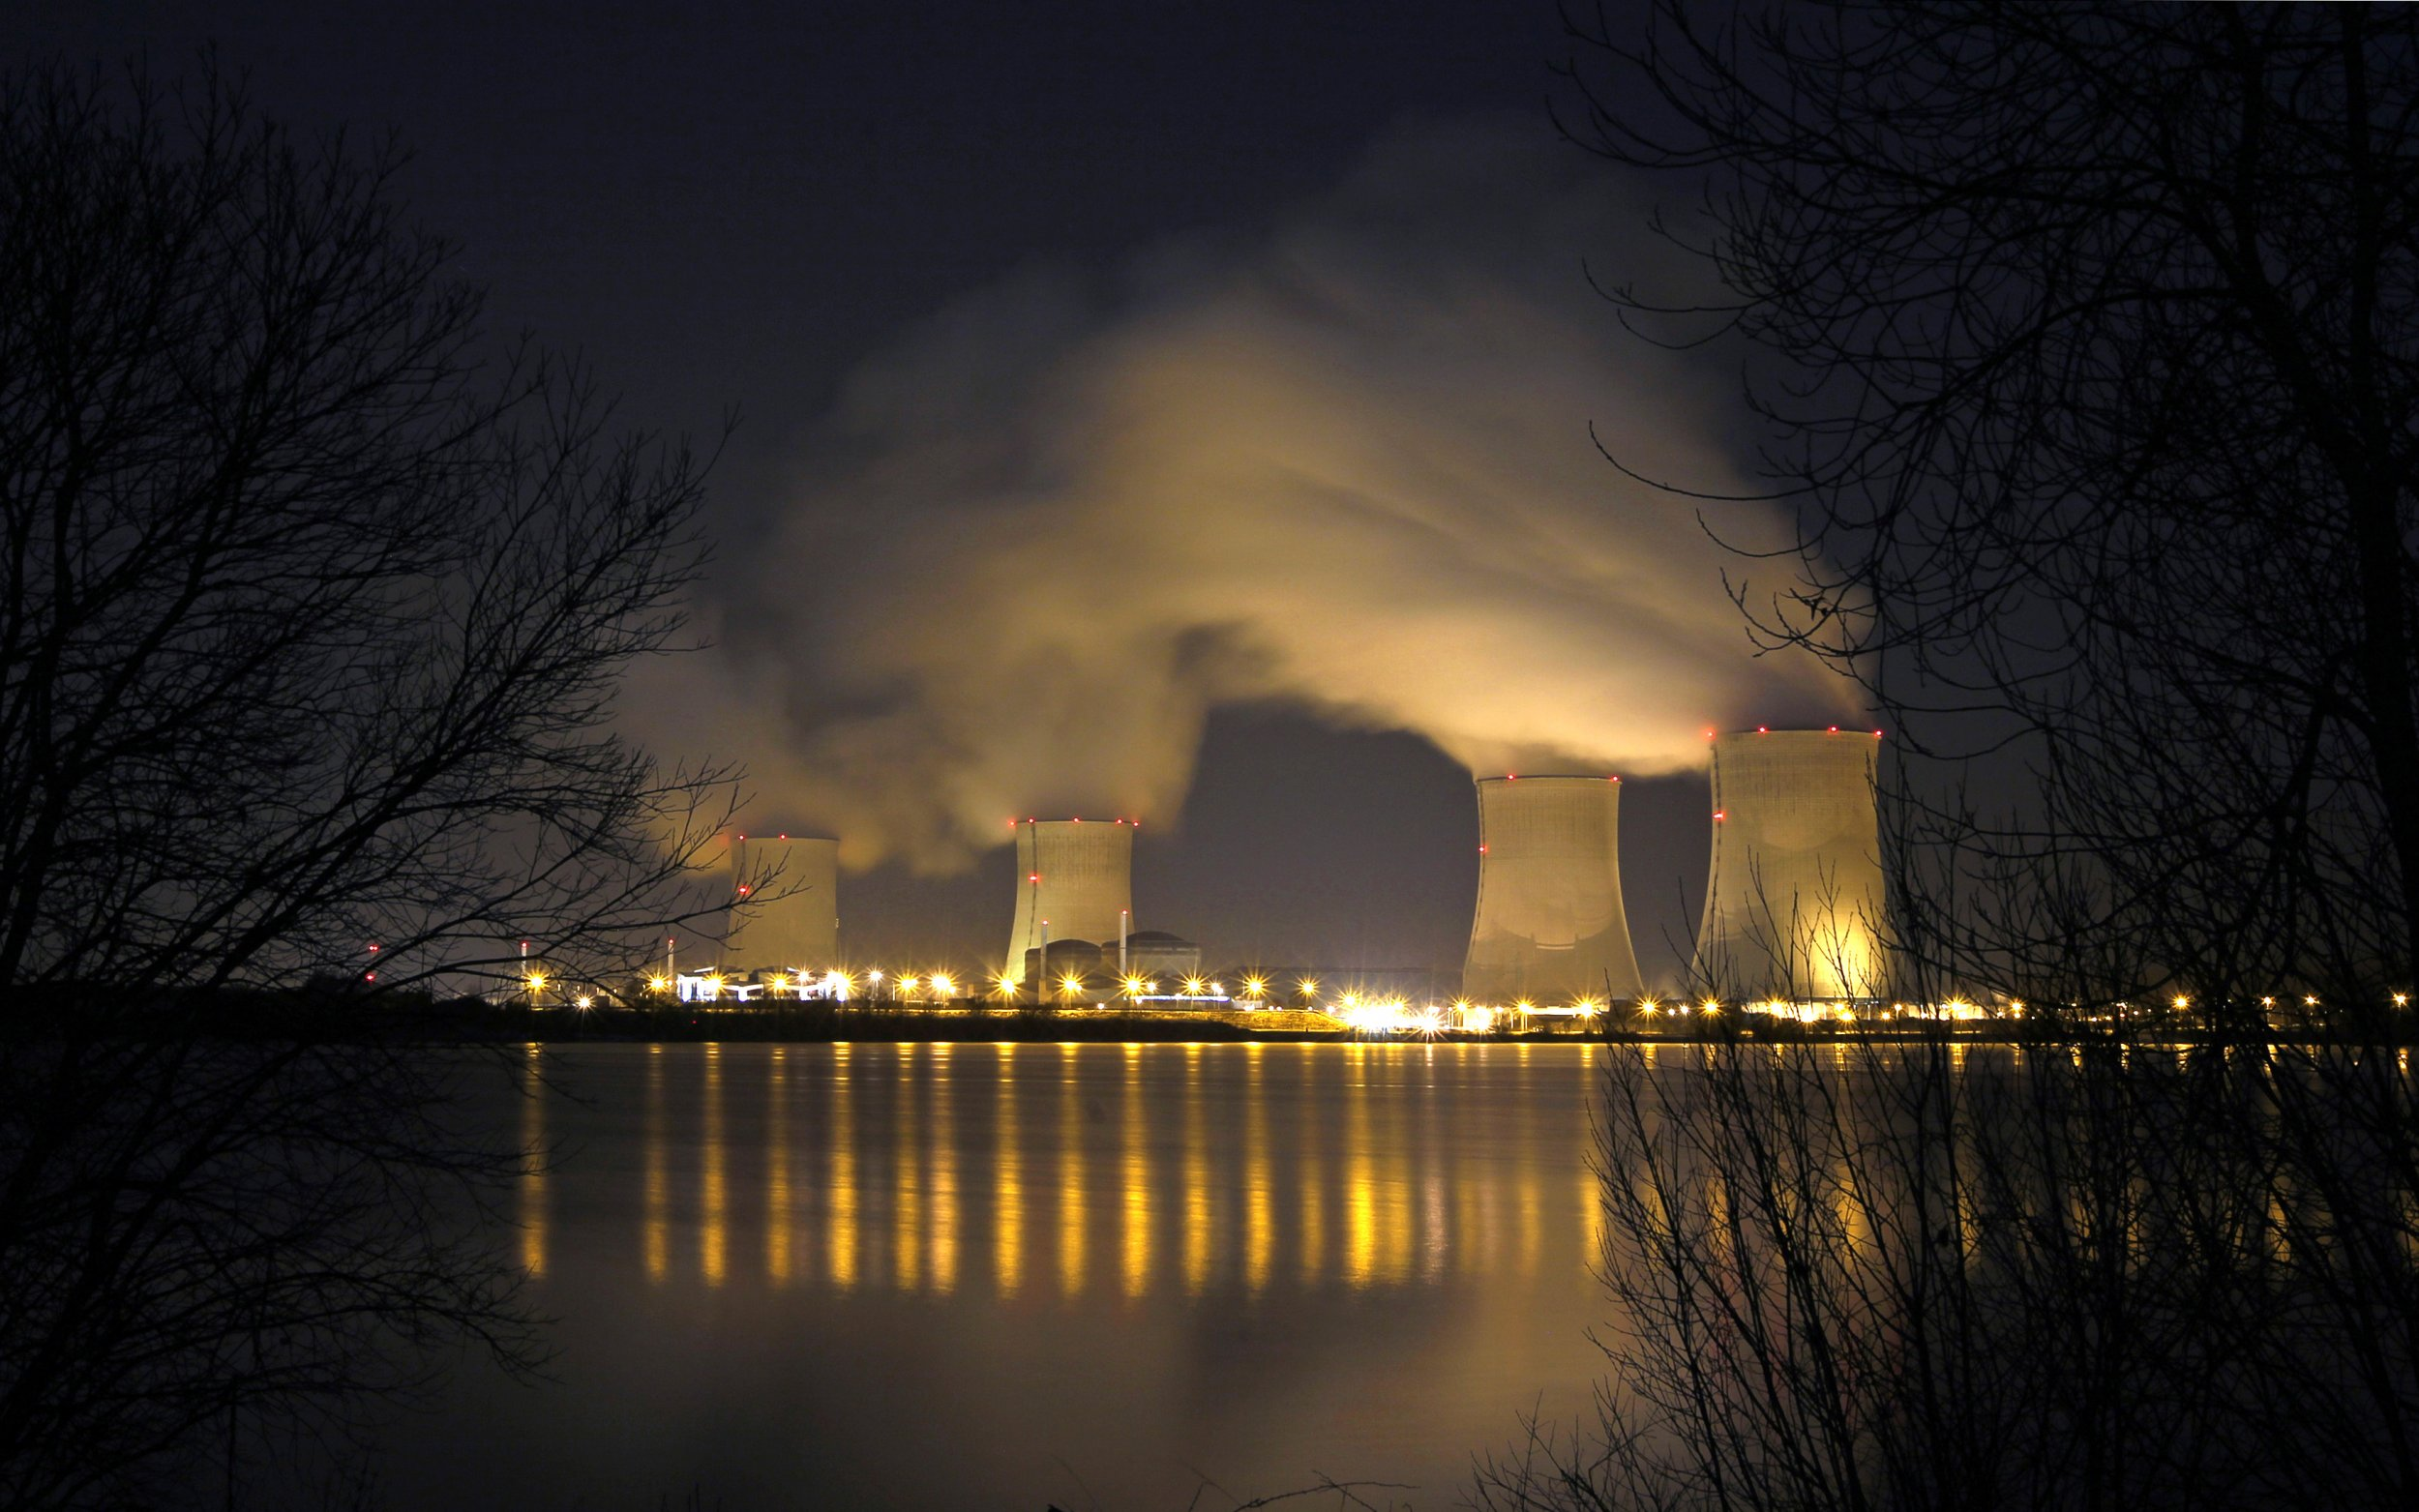 Full Force Diesel >> Most French Nuclear Plants 'Should Be Shut Down' Over Drone Threat